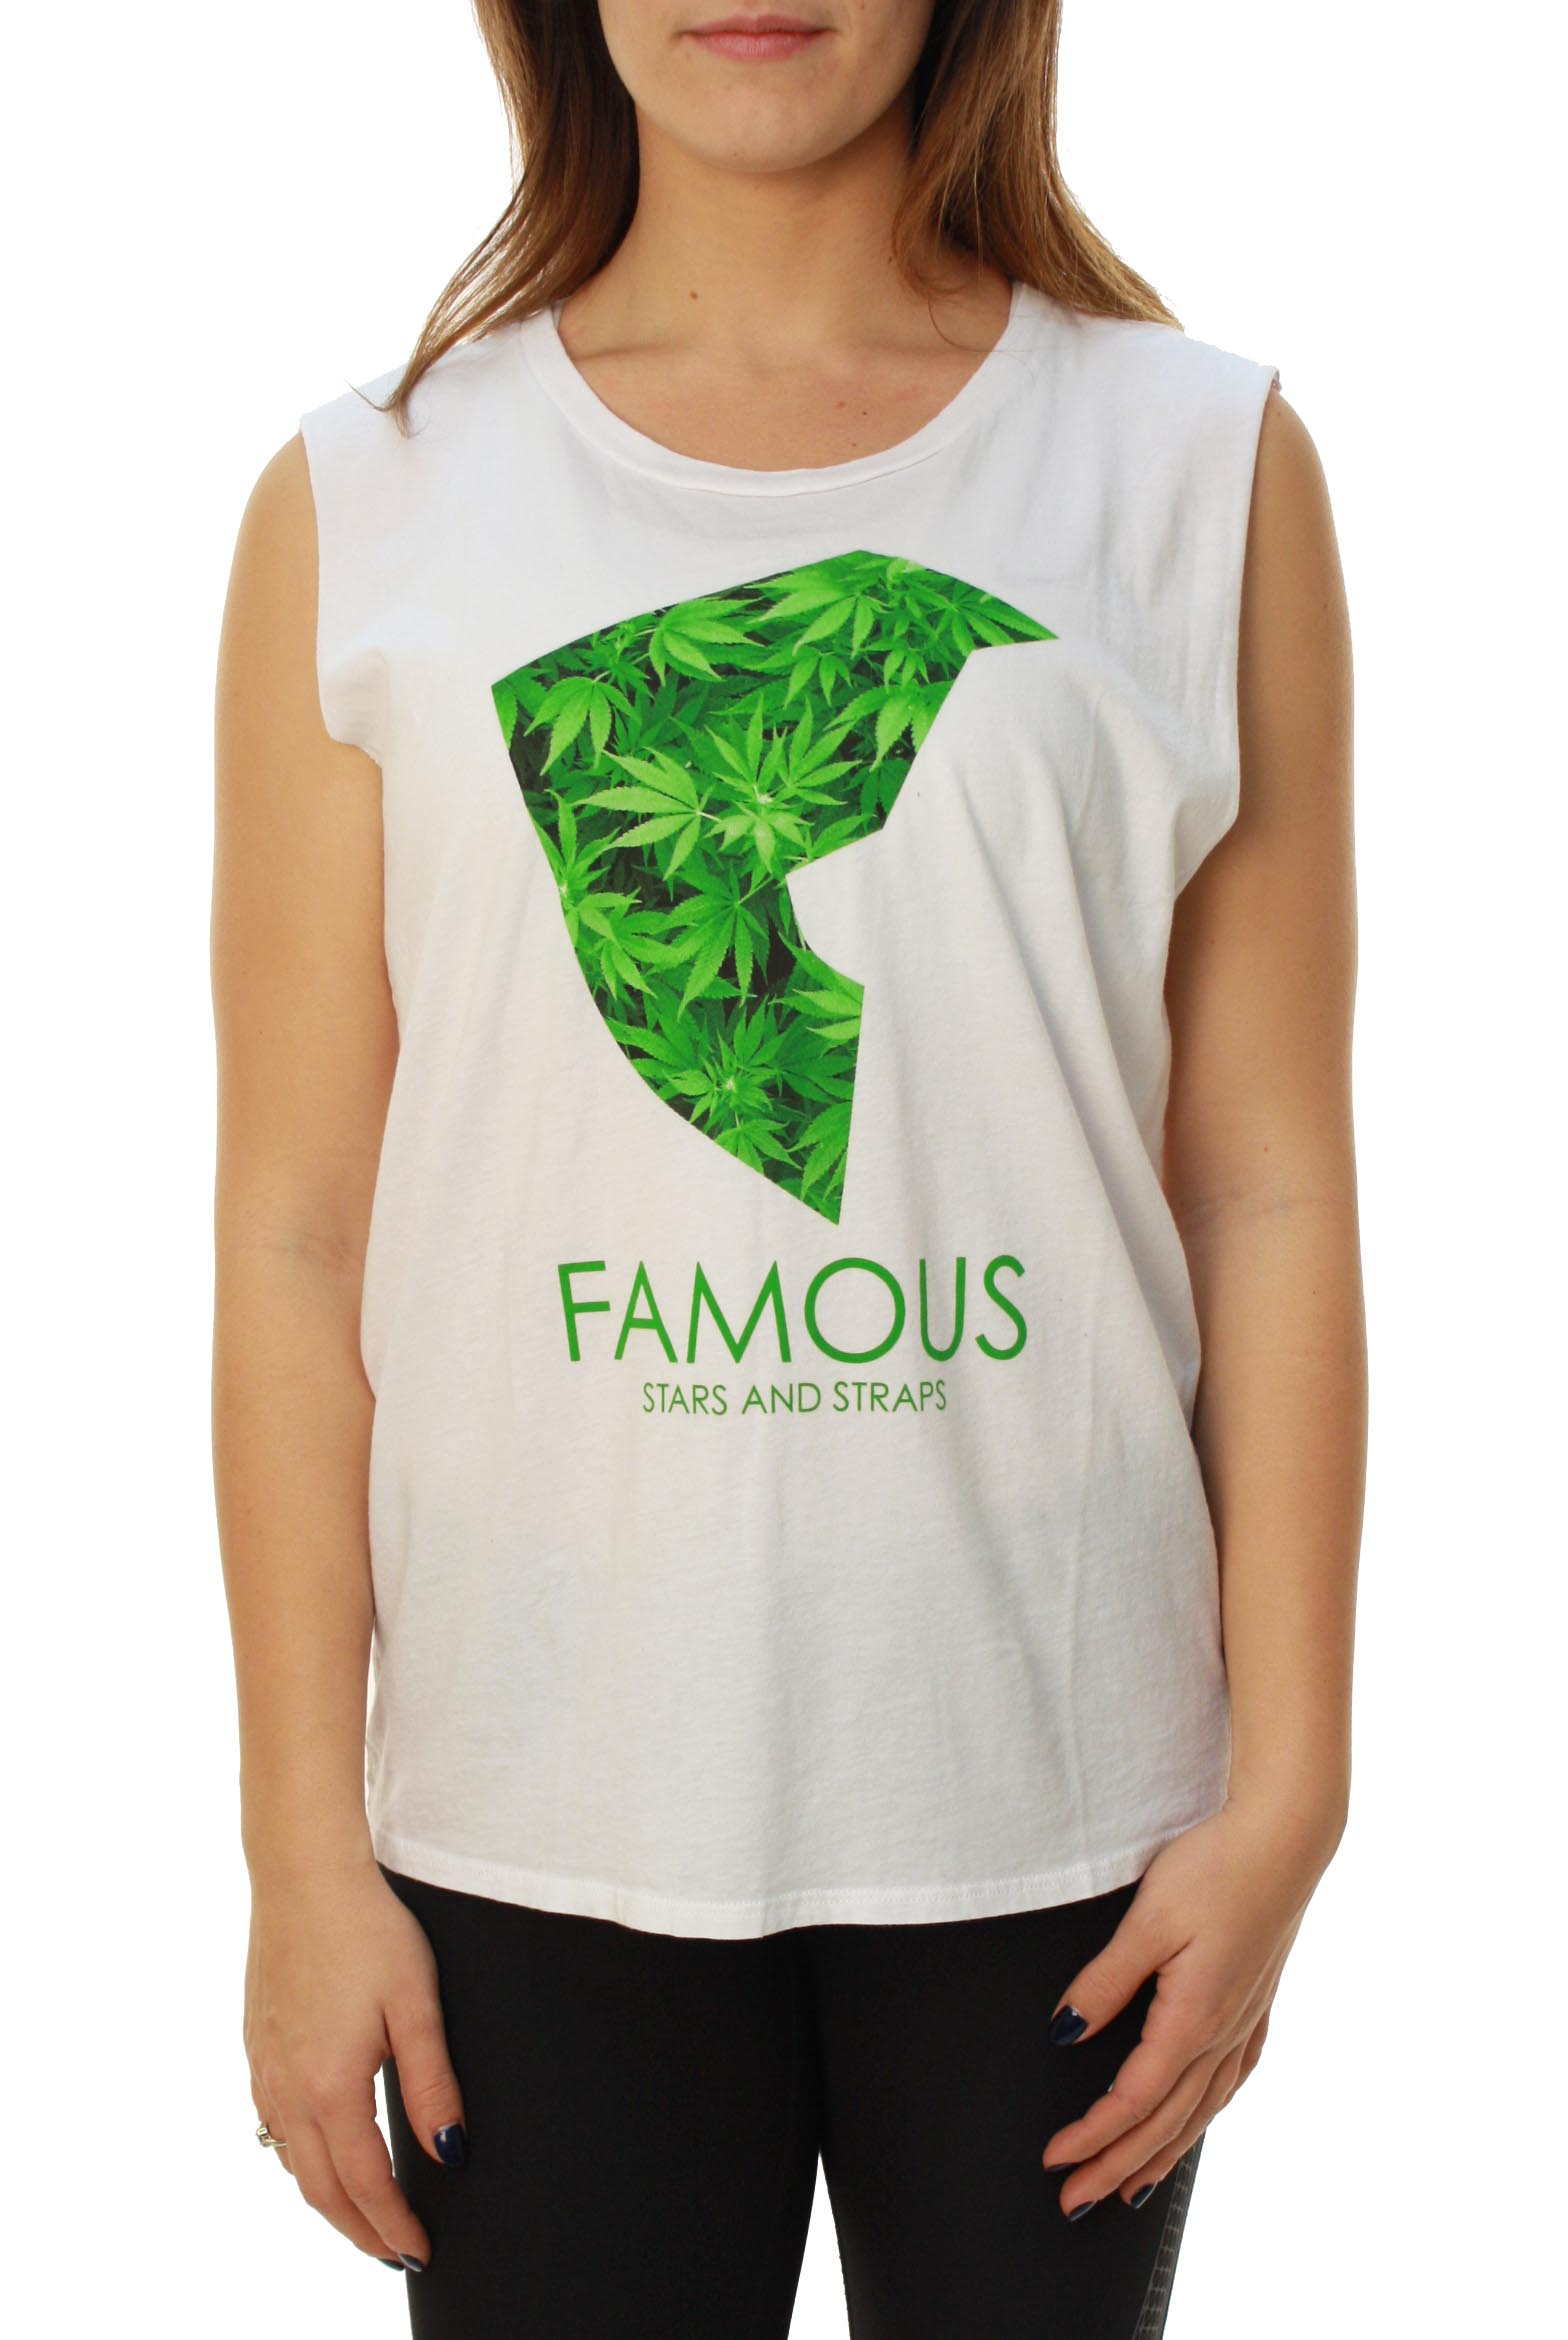 Famous Stars and Straps Women's Medicinal Juniors Muscle Tank Top